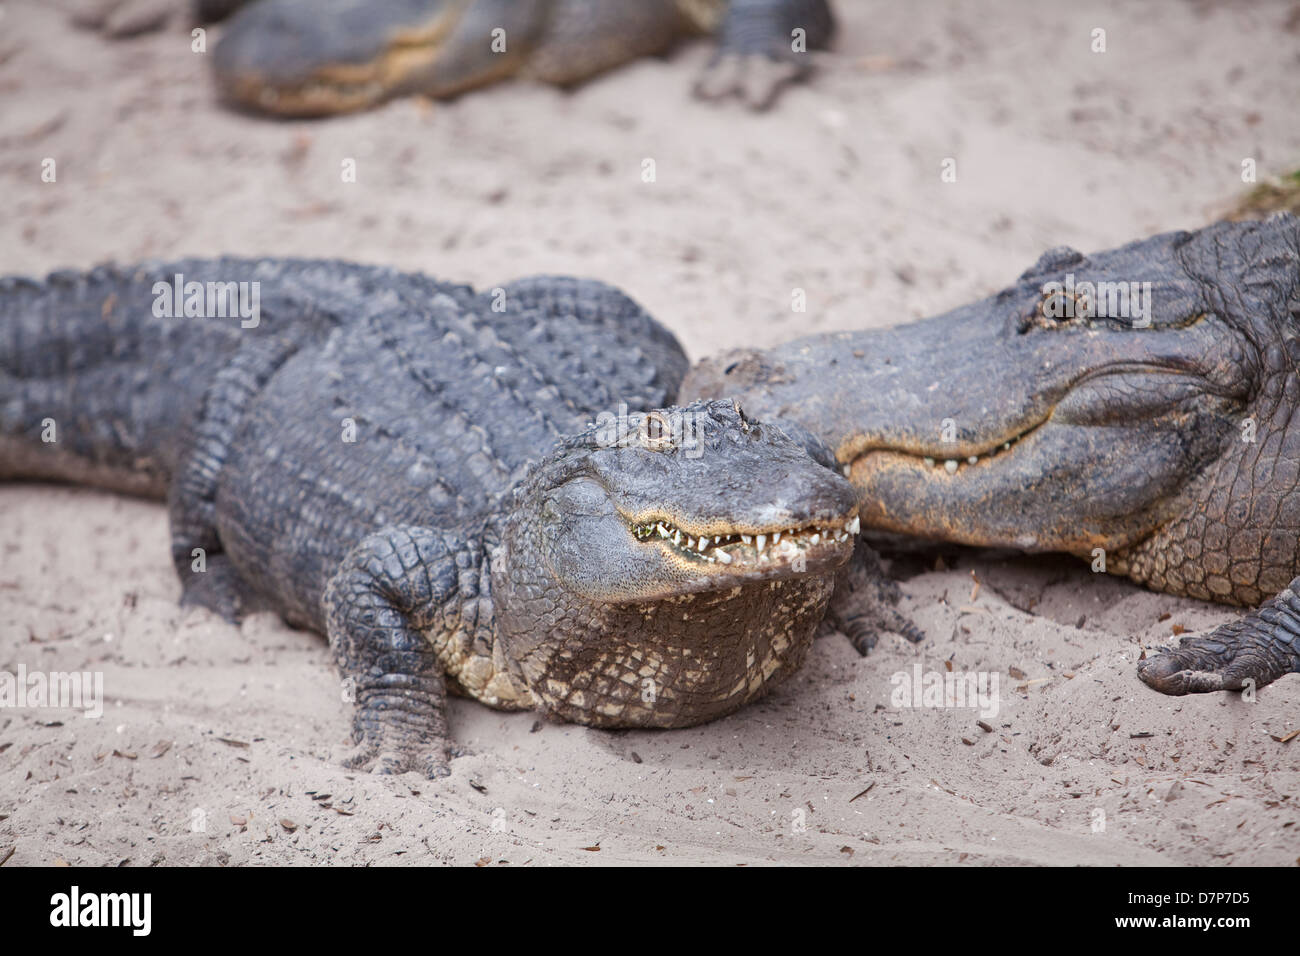 American alligators are seen at Alligator farm Zoological Park in St. Augustine, Florida - Stock Image